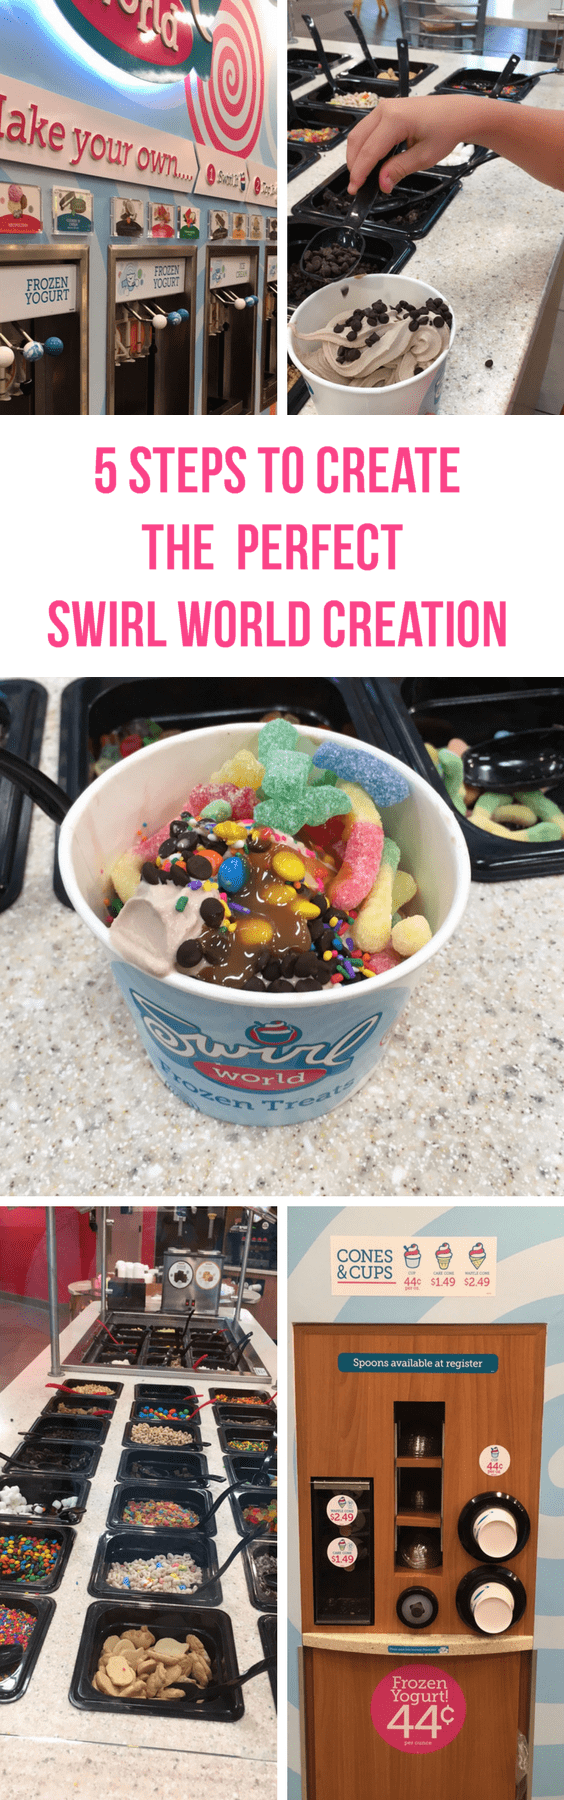 5 Steps To Create The Perfect Swirl World Creation